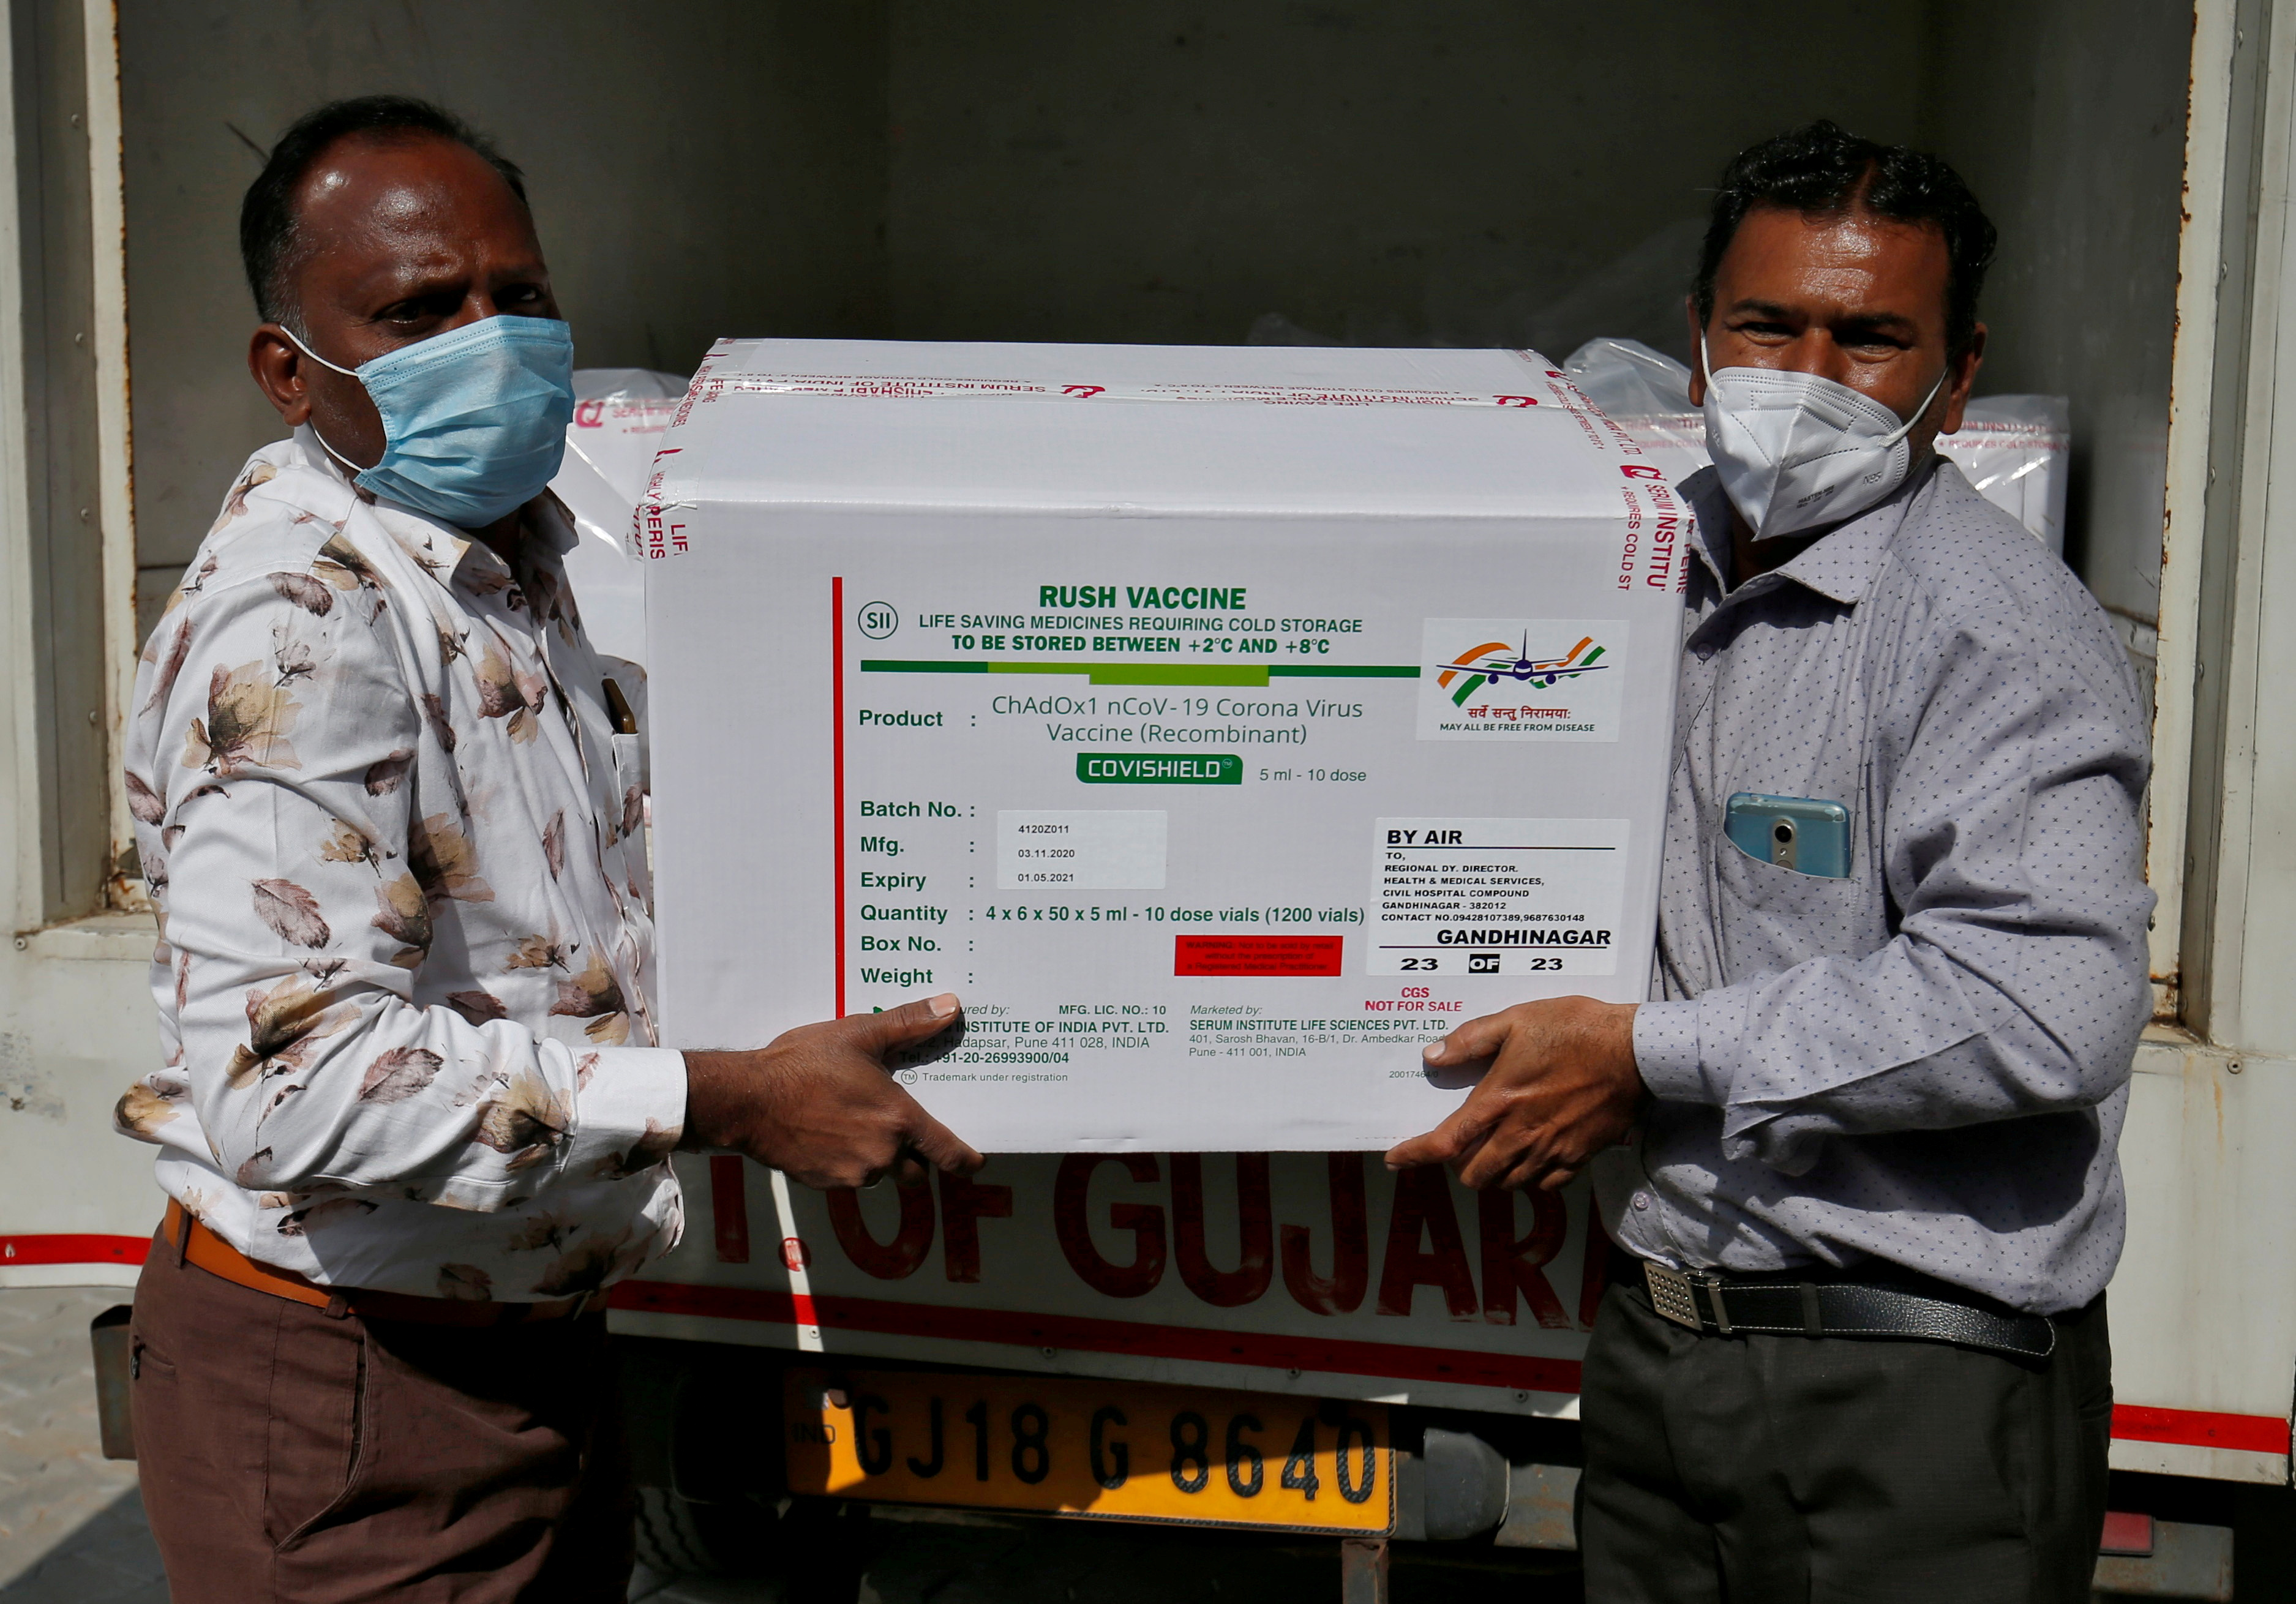 Officials unload boxes containing vials of AstraZeneca's COVISHIELD, a coronavirus disease (COVID-19) vaccine manufactured by Serum Institute of India,  outside a vaccination storage centre in Ahmedabad, India, January 12, 2021. REUTERS/Amit Dave